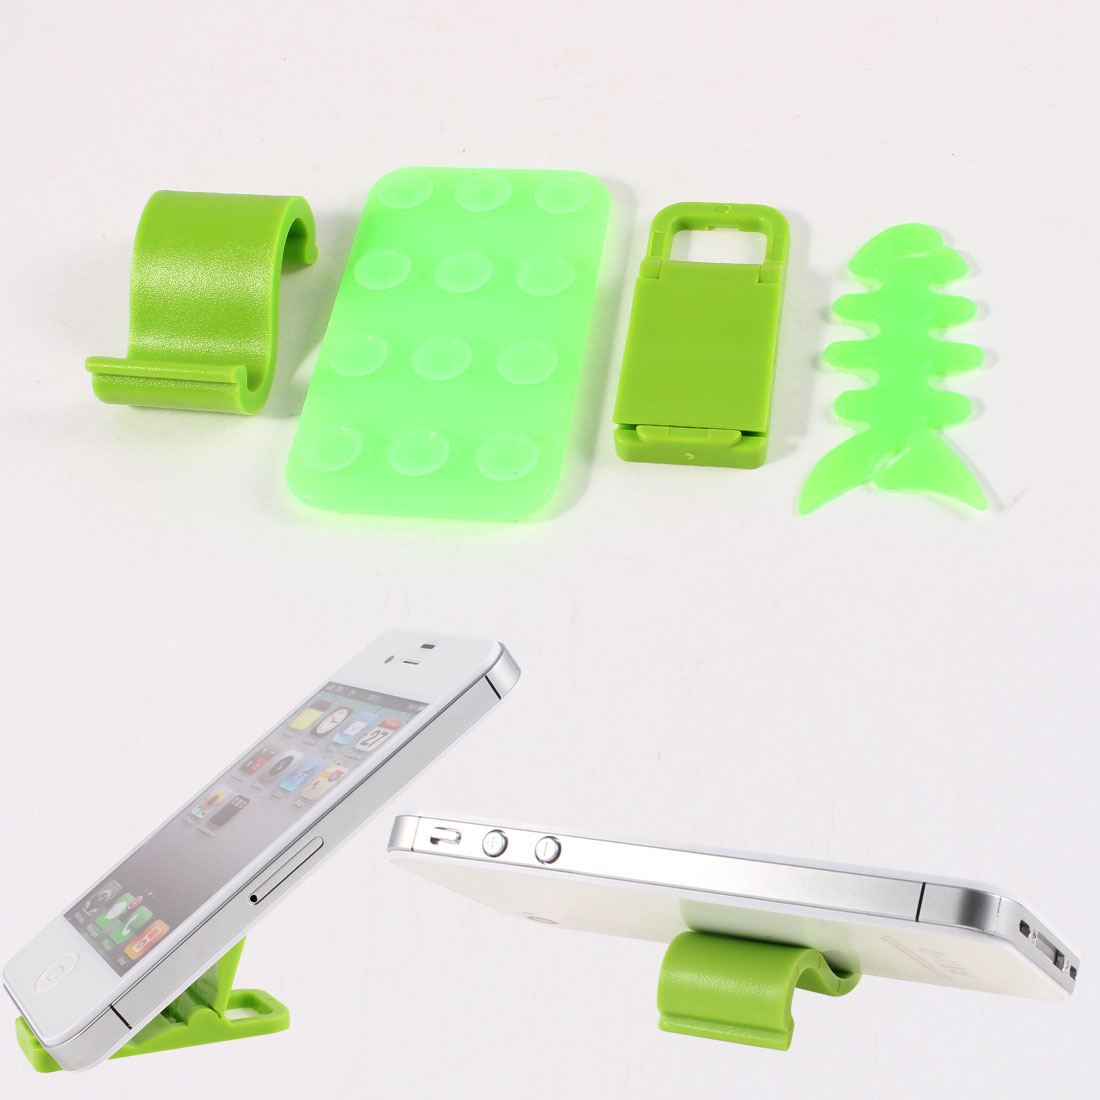 Phone Silicone Suction Cup Plastic S Shaped Stand Holder w Rubber Fishbone Cord Organizer Green 4 in 1